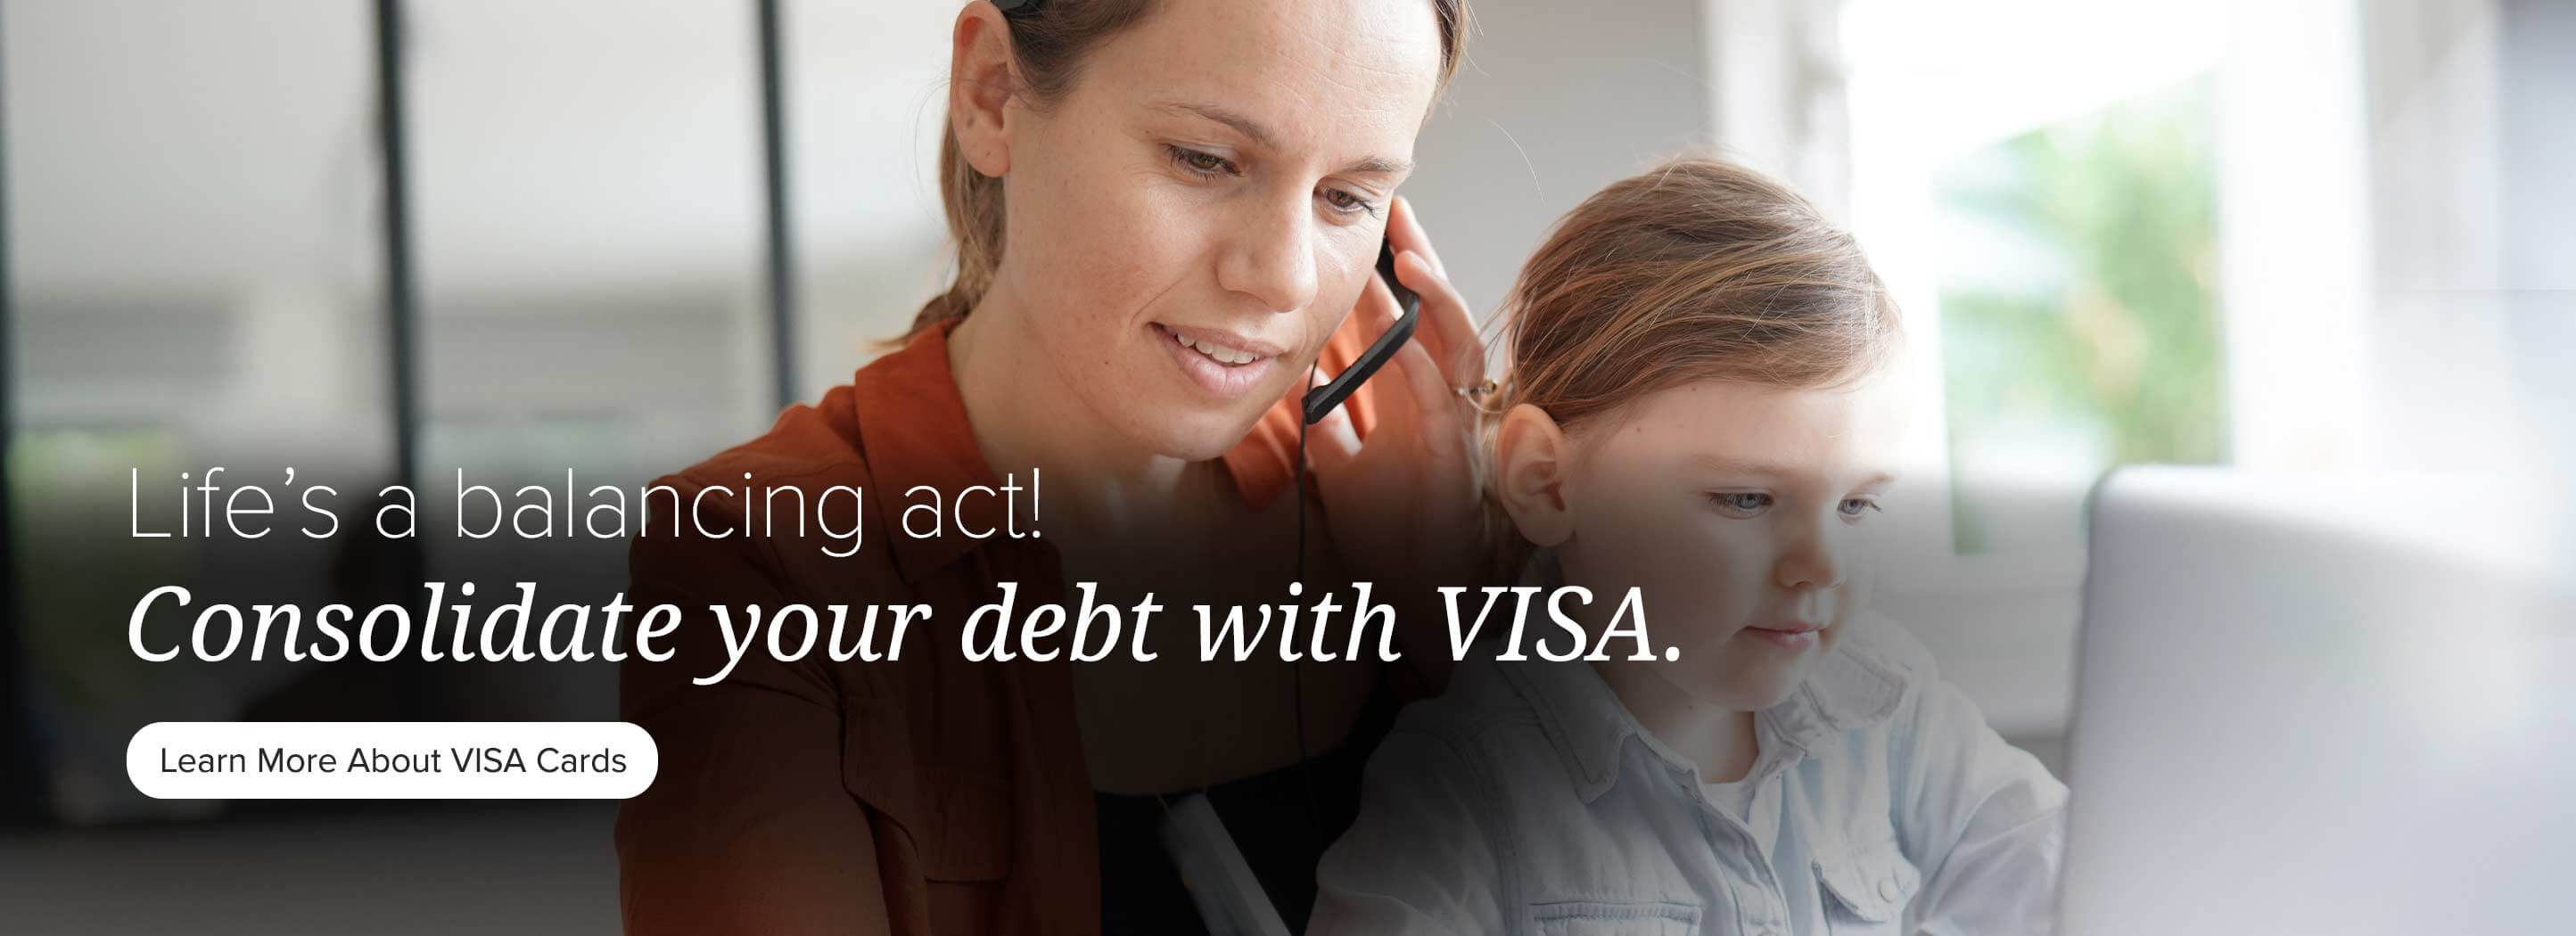 Life's a balancing act! Consolidate your debt with VISA. Learn More.